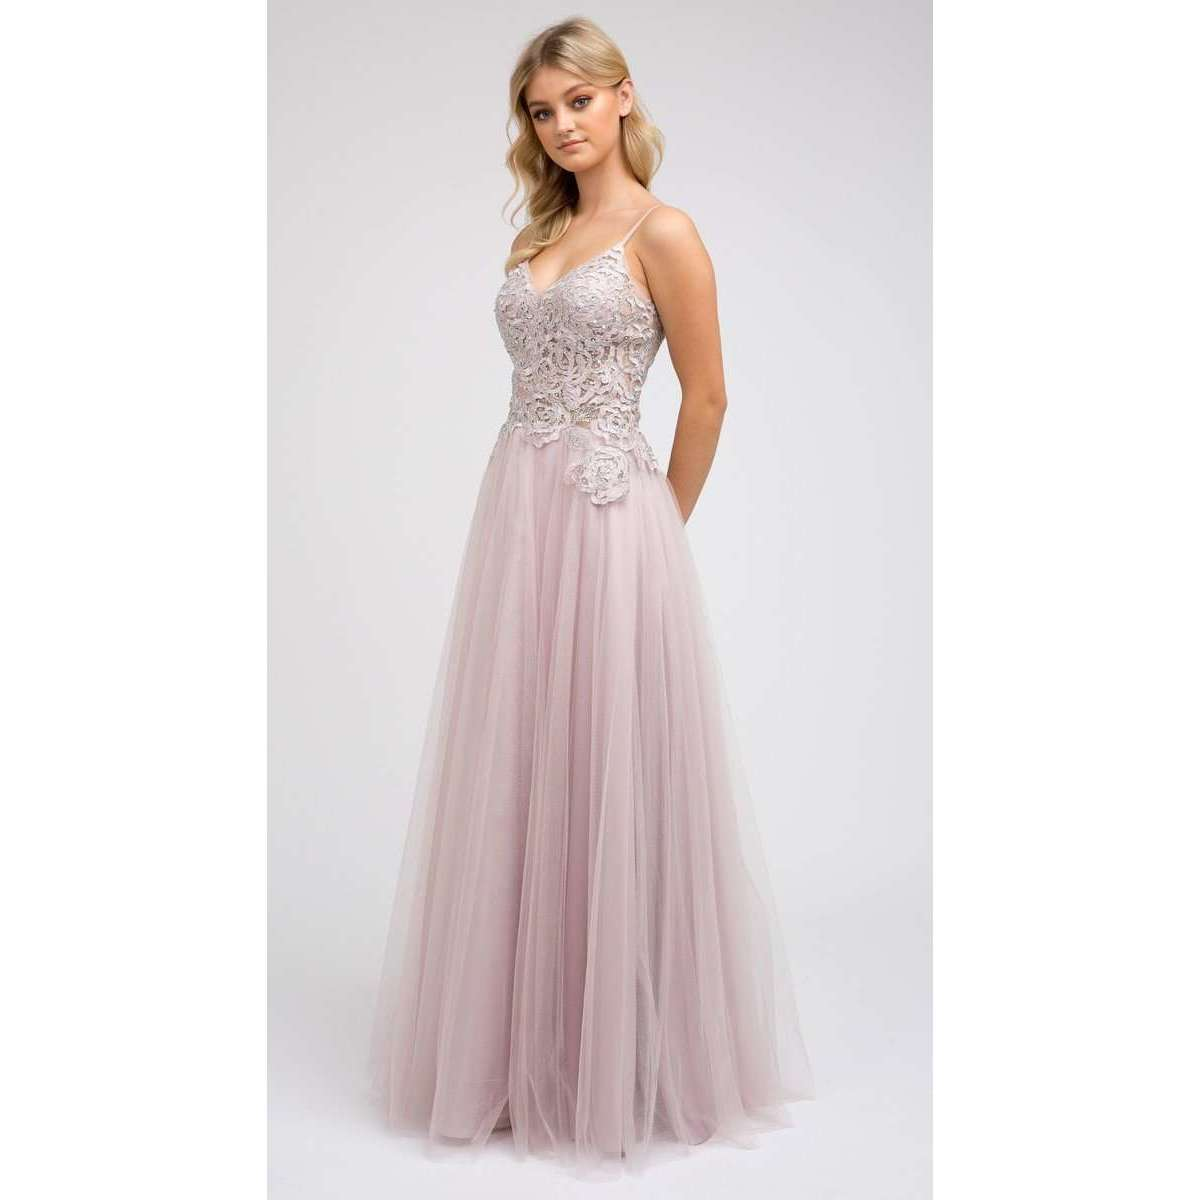 Sheer Embroidered Beaded Bodice Evening Prom Dress 212 - Julietdresses